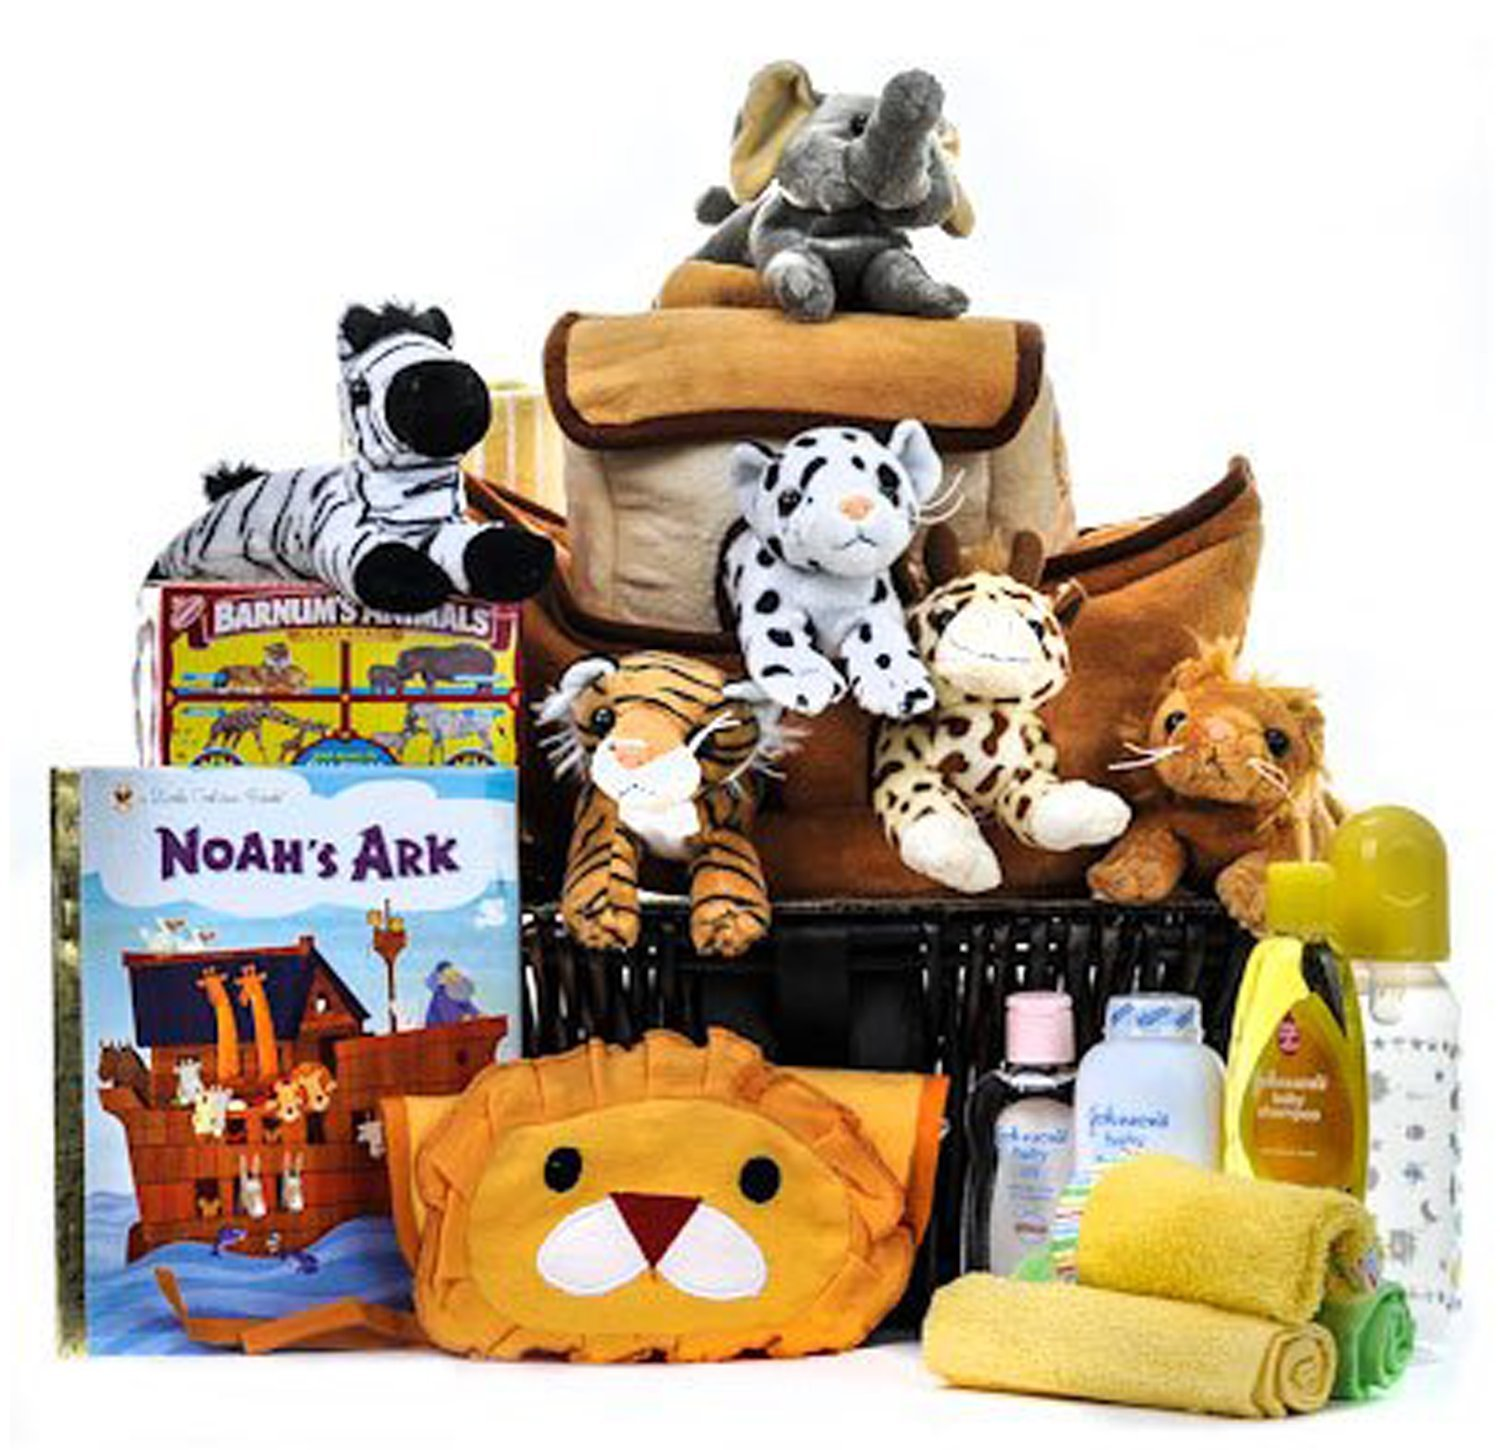 Deluxe Noah's Ark Cuddly Friends Baby Basket